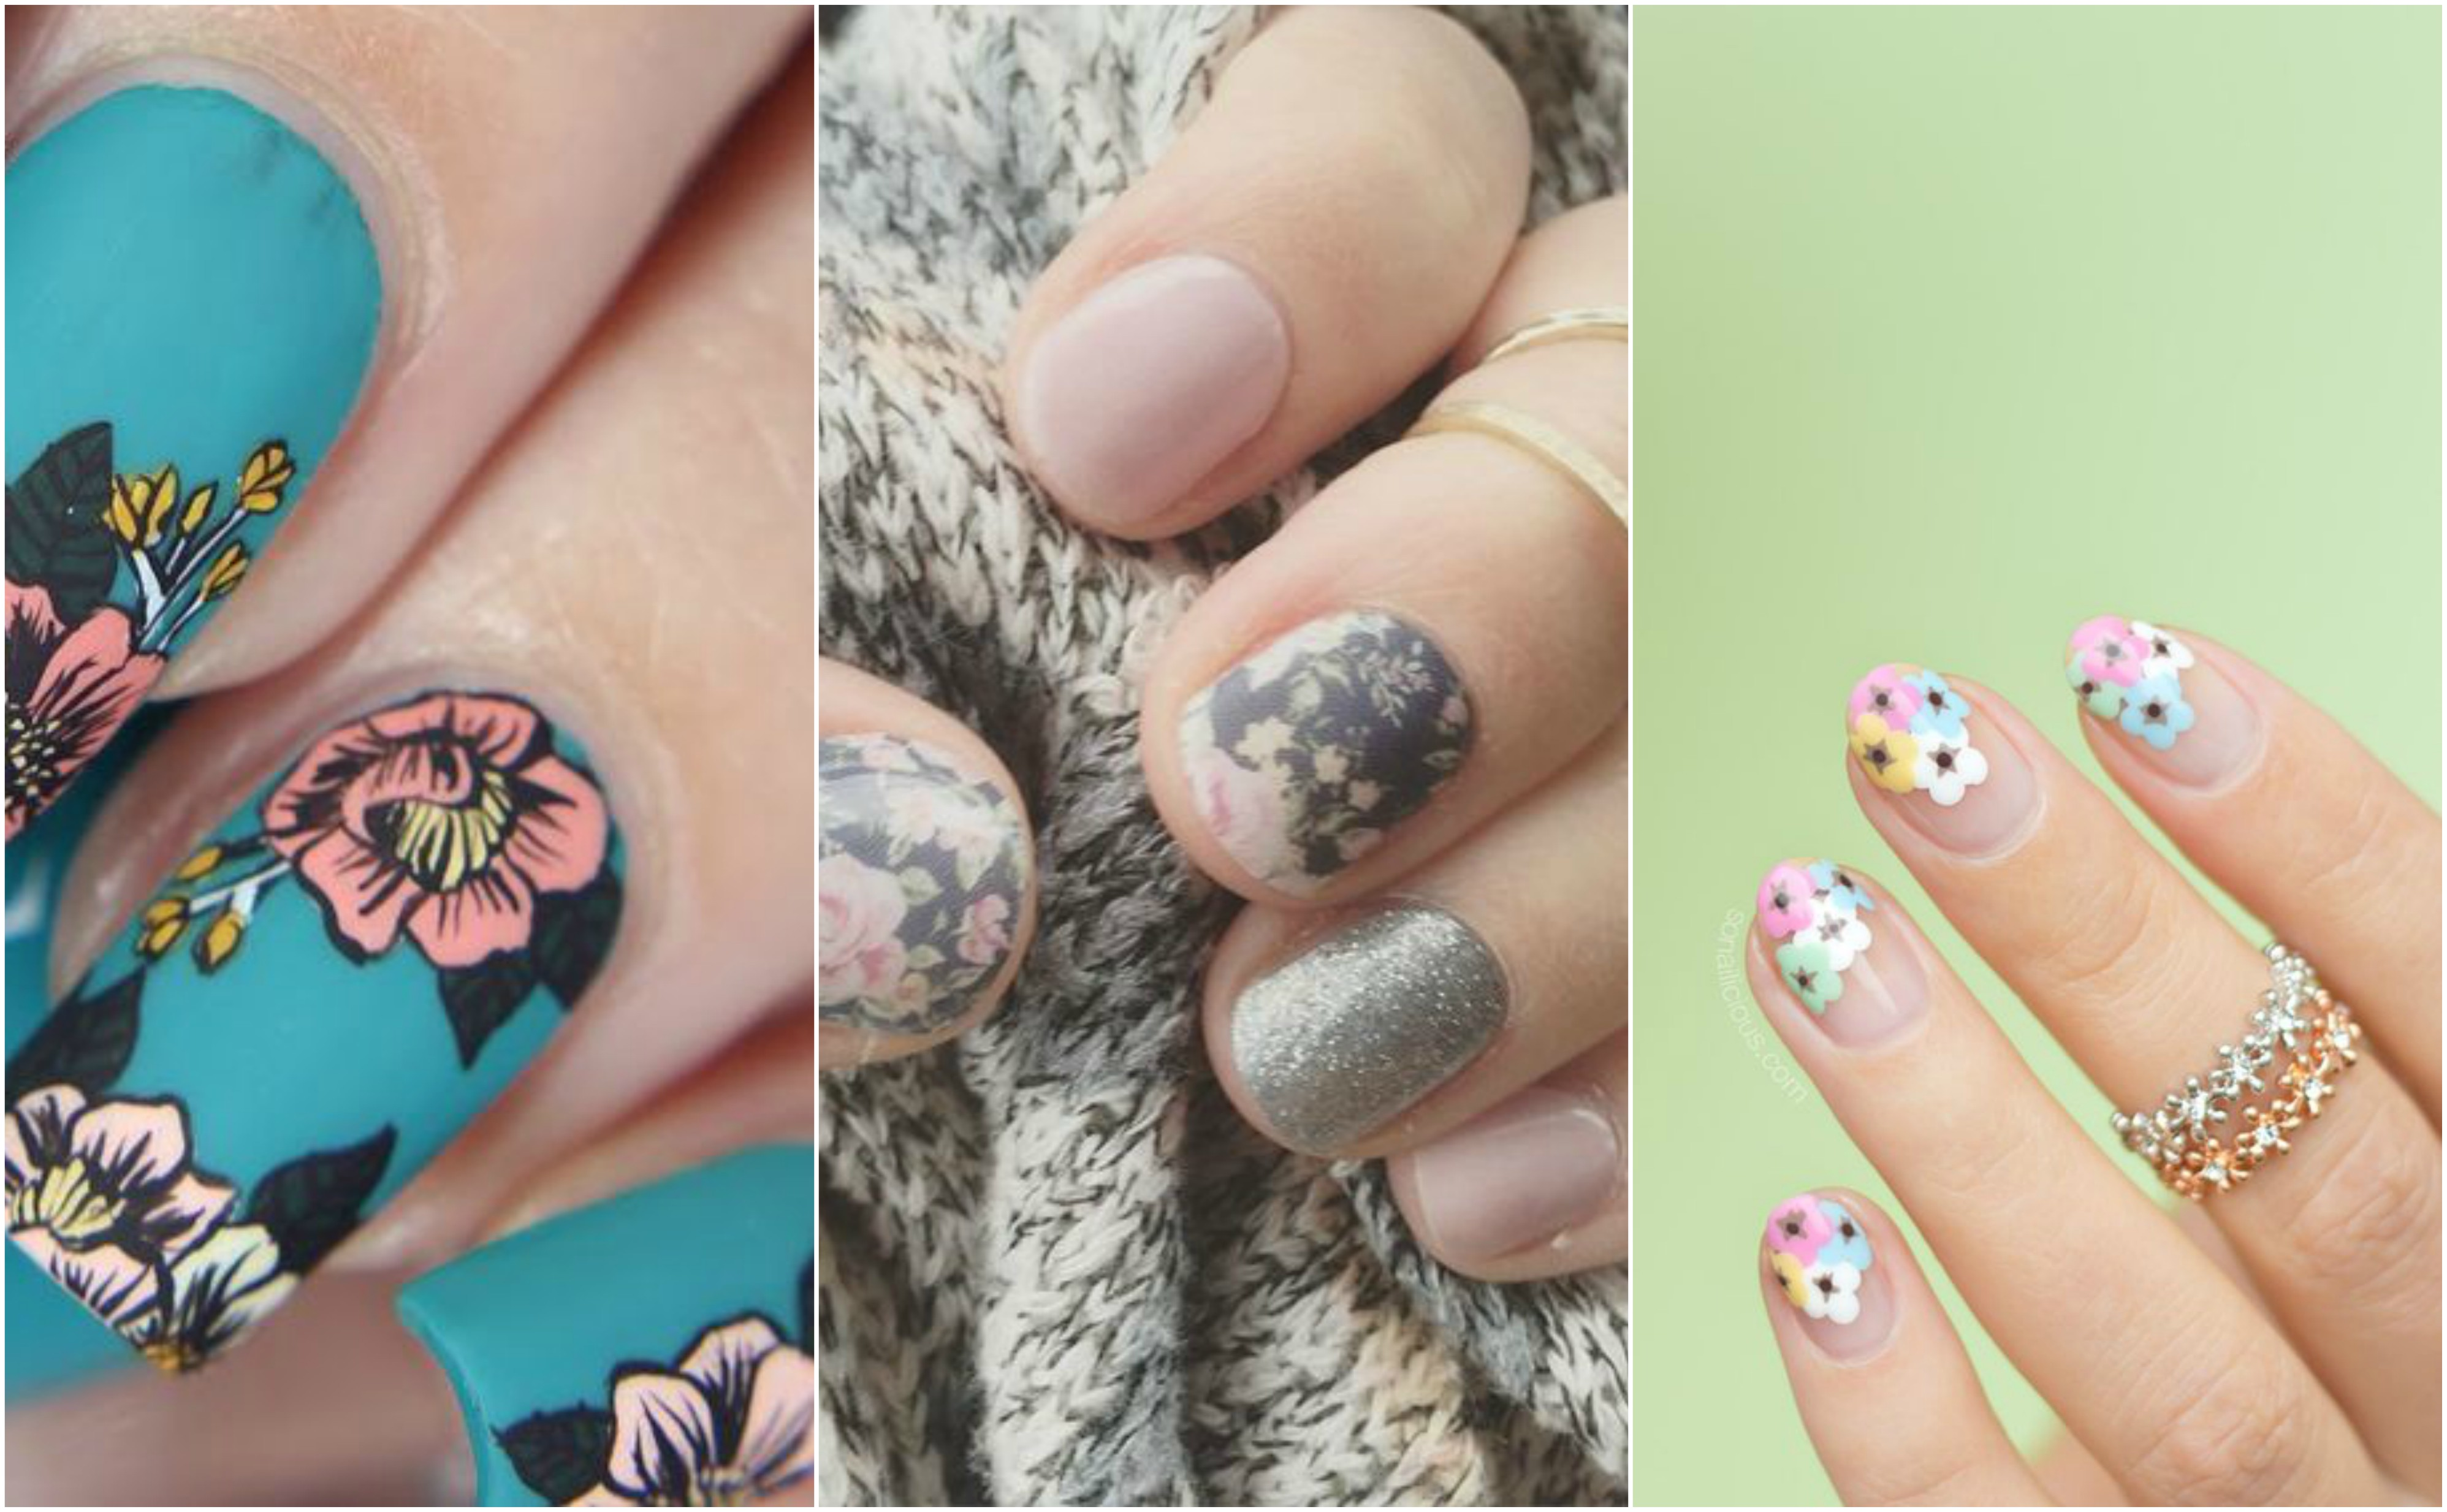 11 ways to rock floral nails year-round